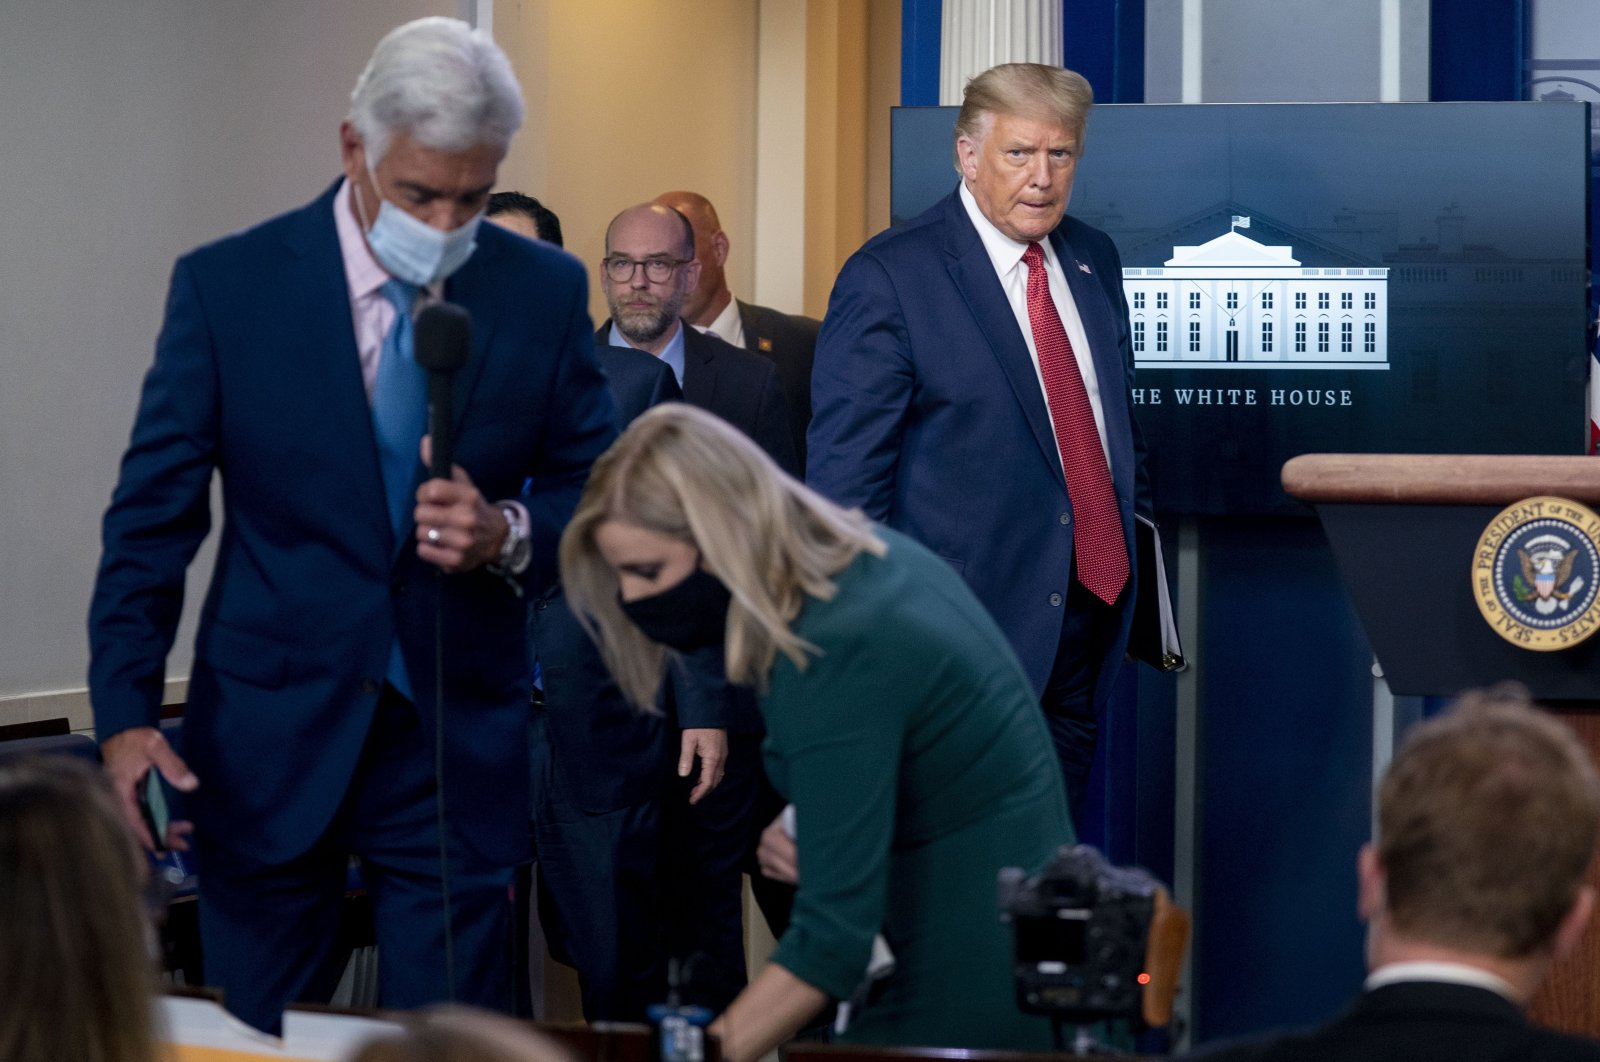 President Donald Trump returns to a news conference in the James Brady Press Briefing Room after he briefly left because of a security incident outside the fence of the White House, Washington D.C., Aug. 10, 2020. (AP Photo)